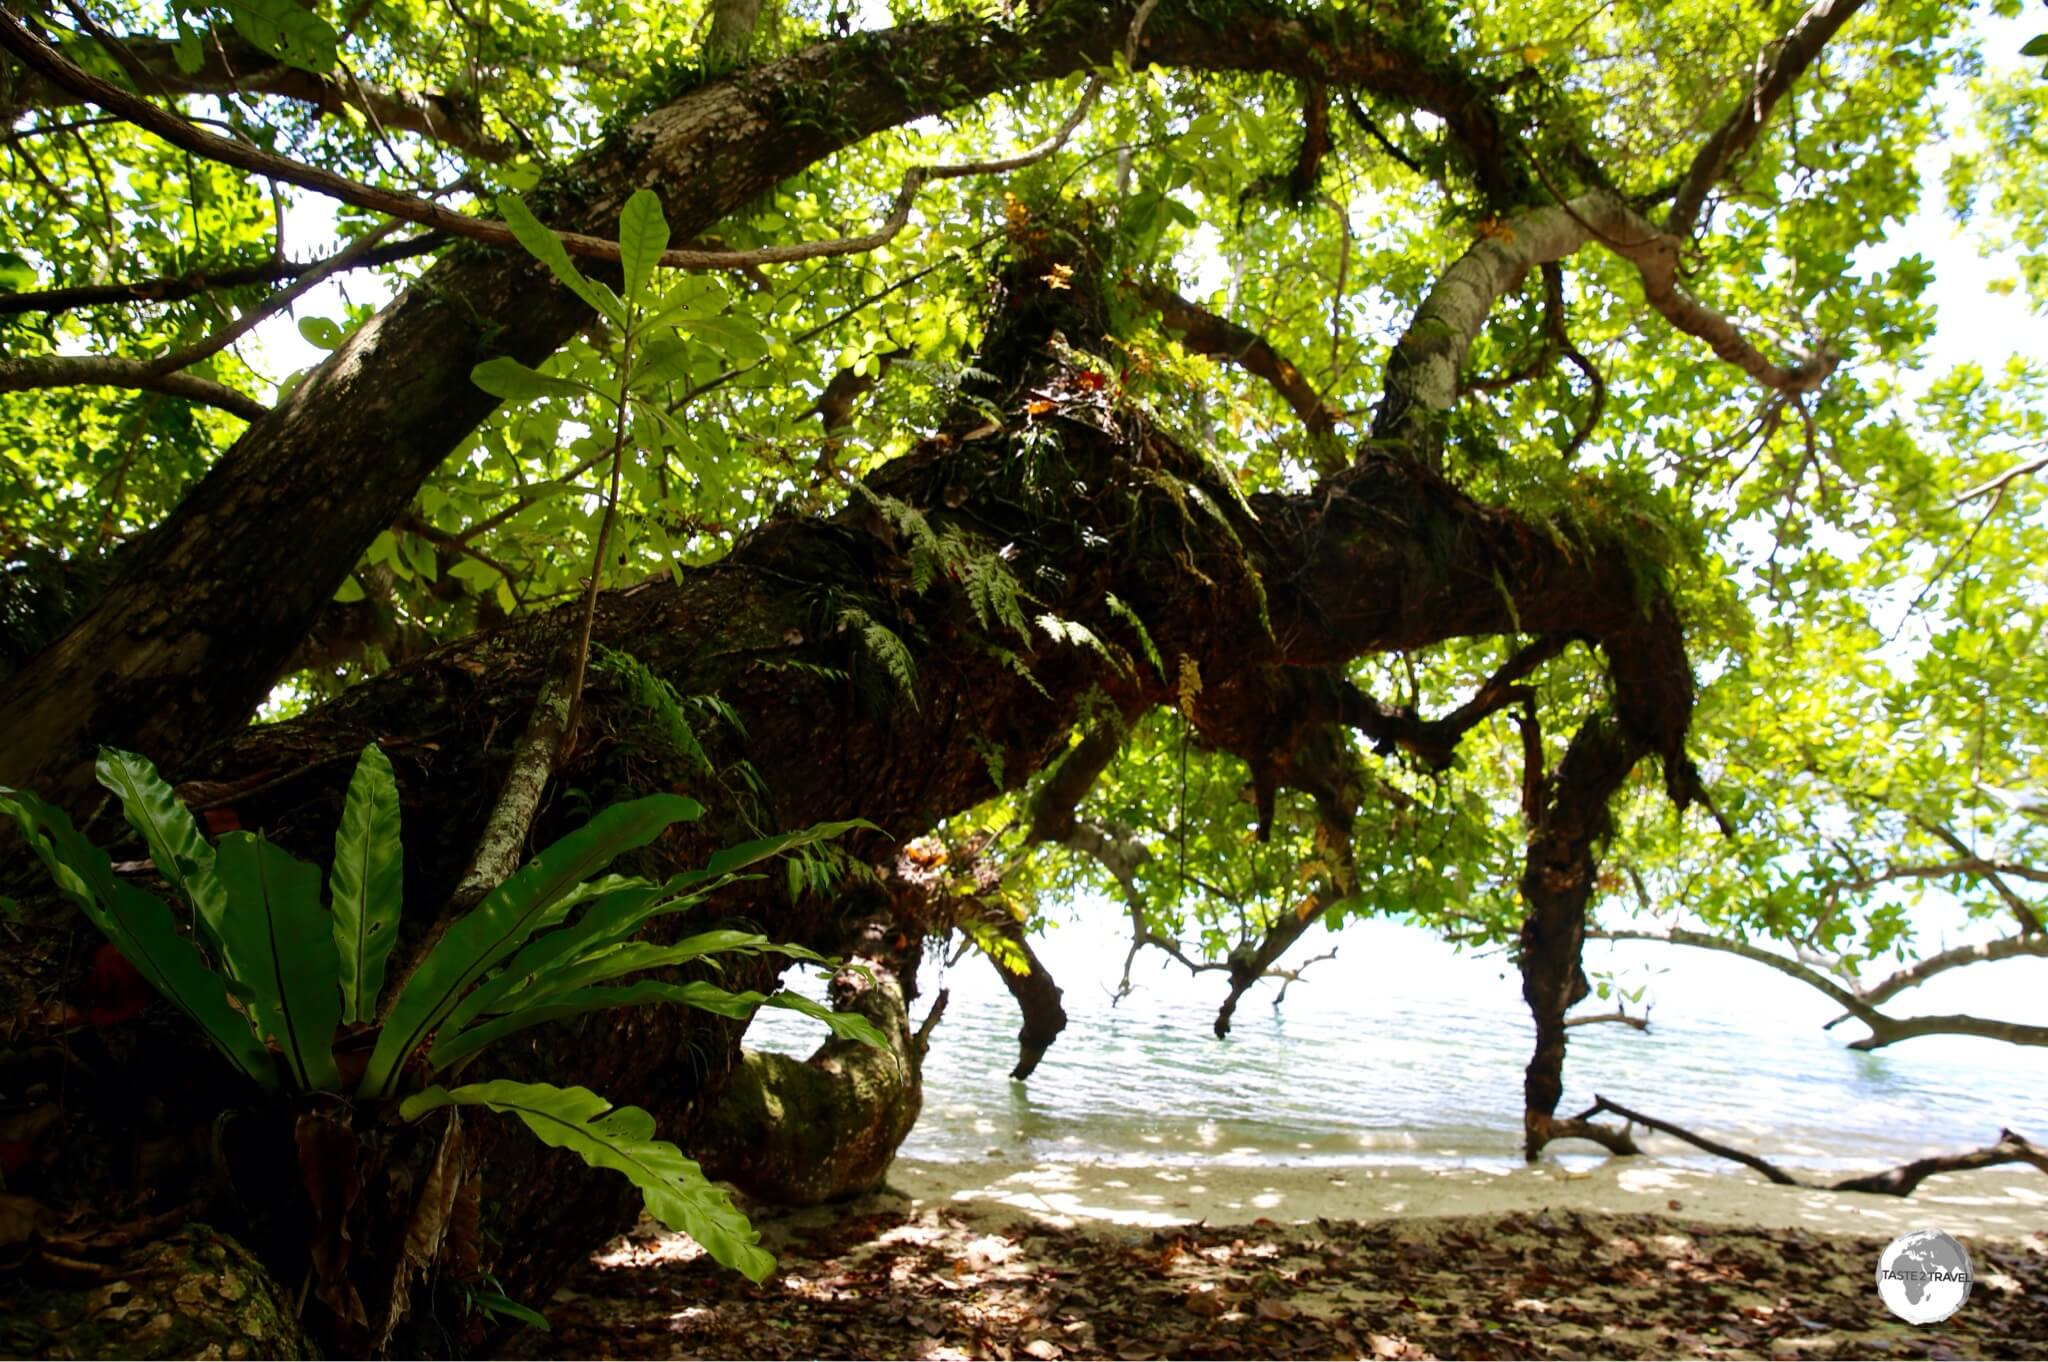 Giant Tamanu trees provide ample shade on the beach at Malo Island.